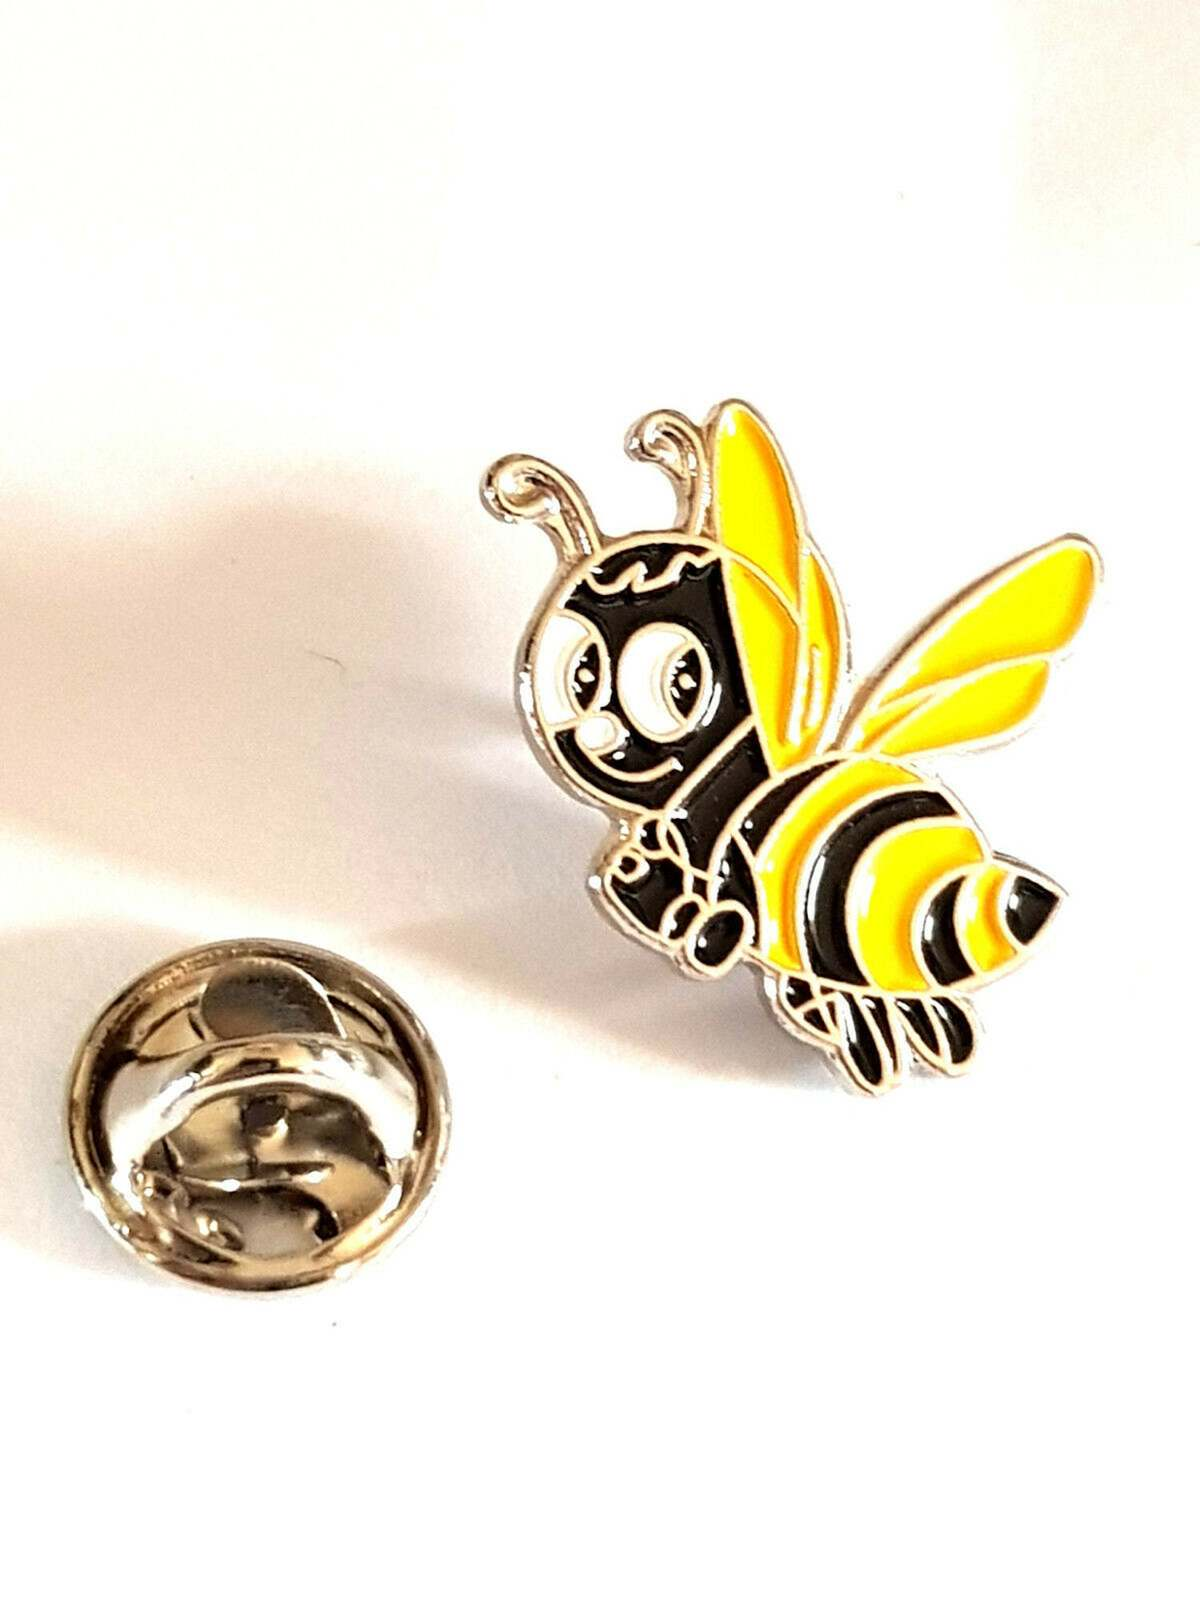 buzzy bee Lapel Pin Badge / tie pin. in gift box enamel finished